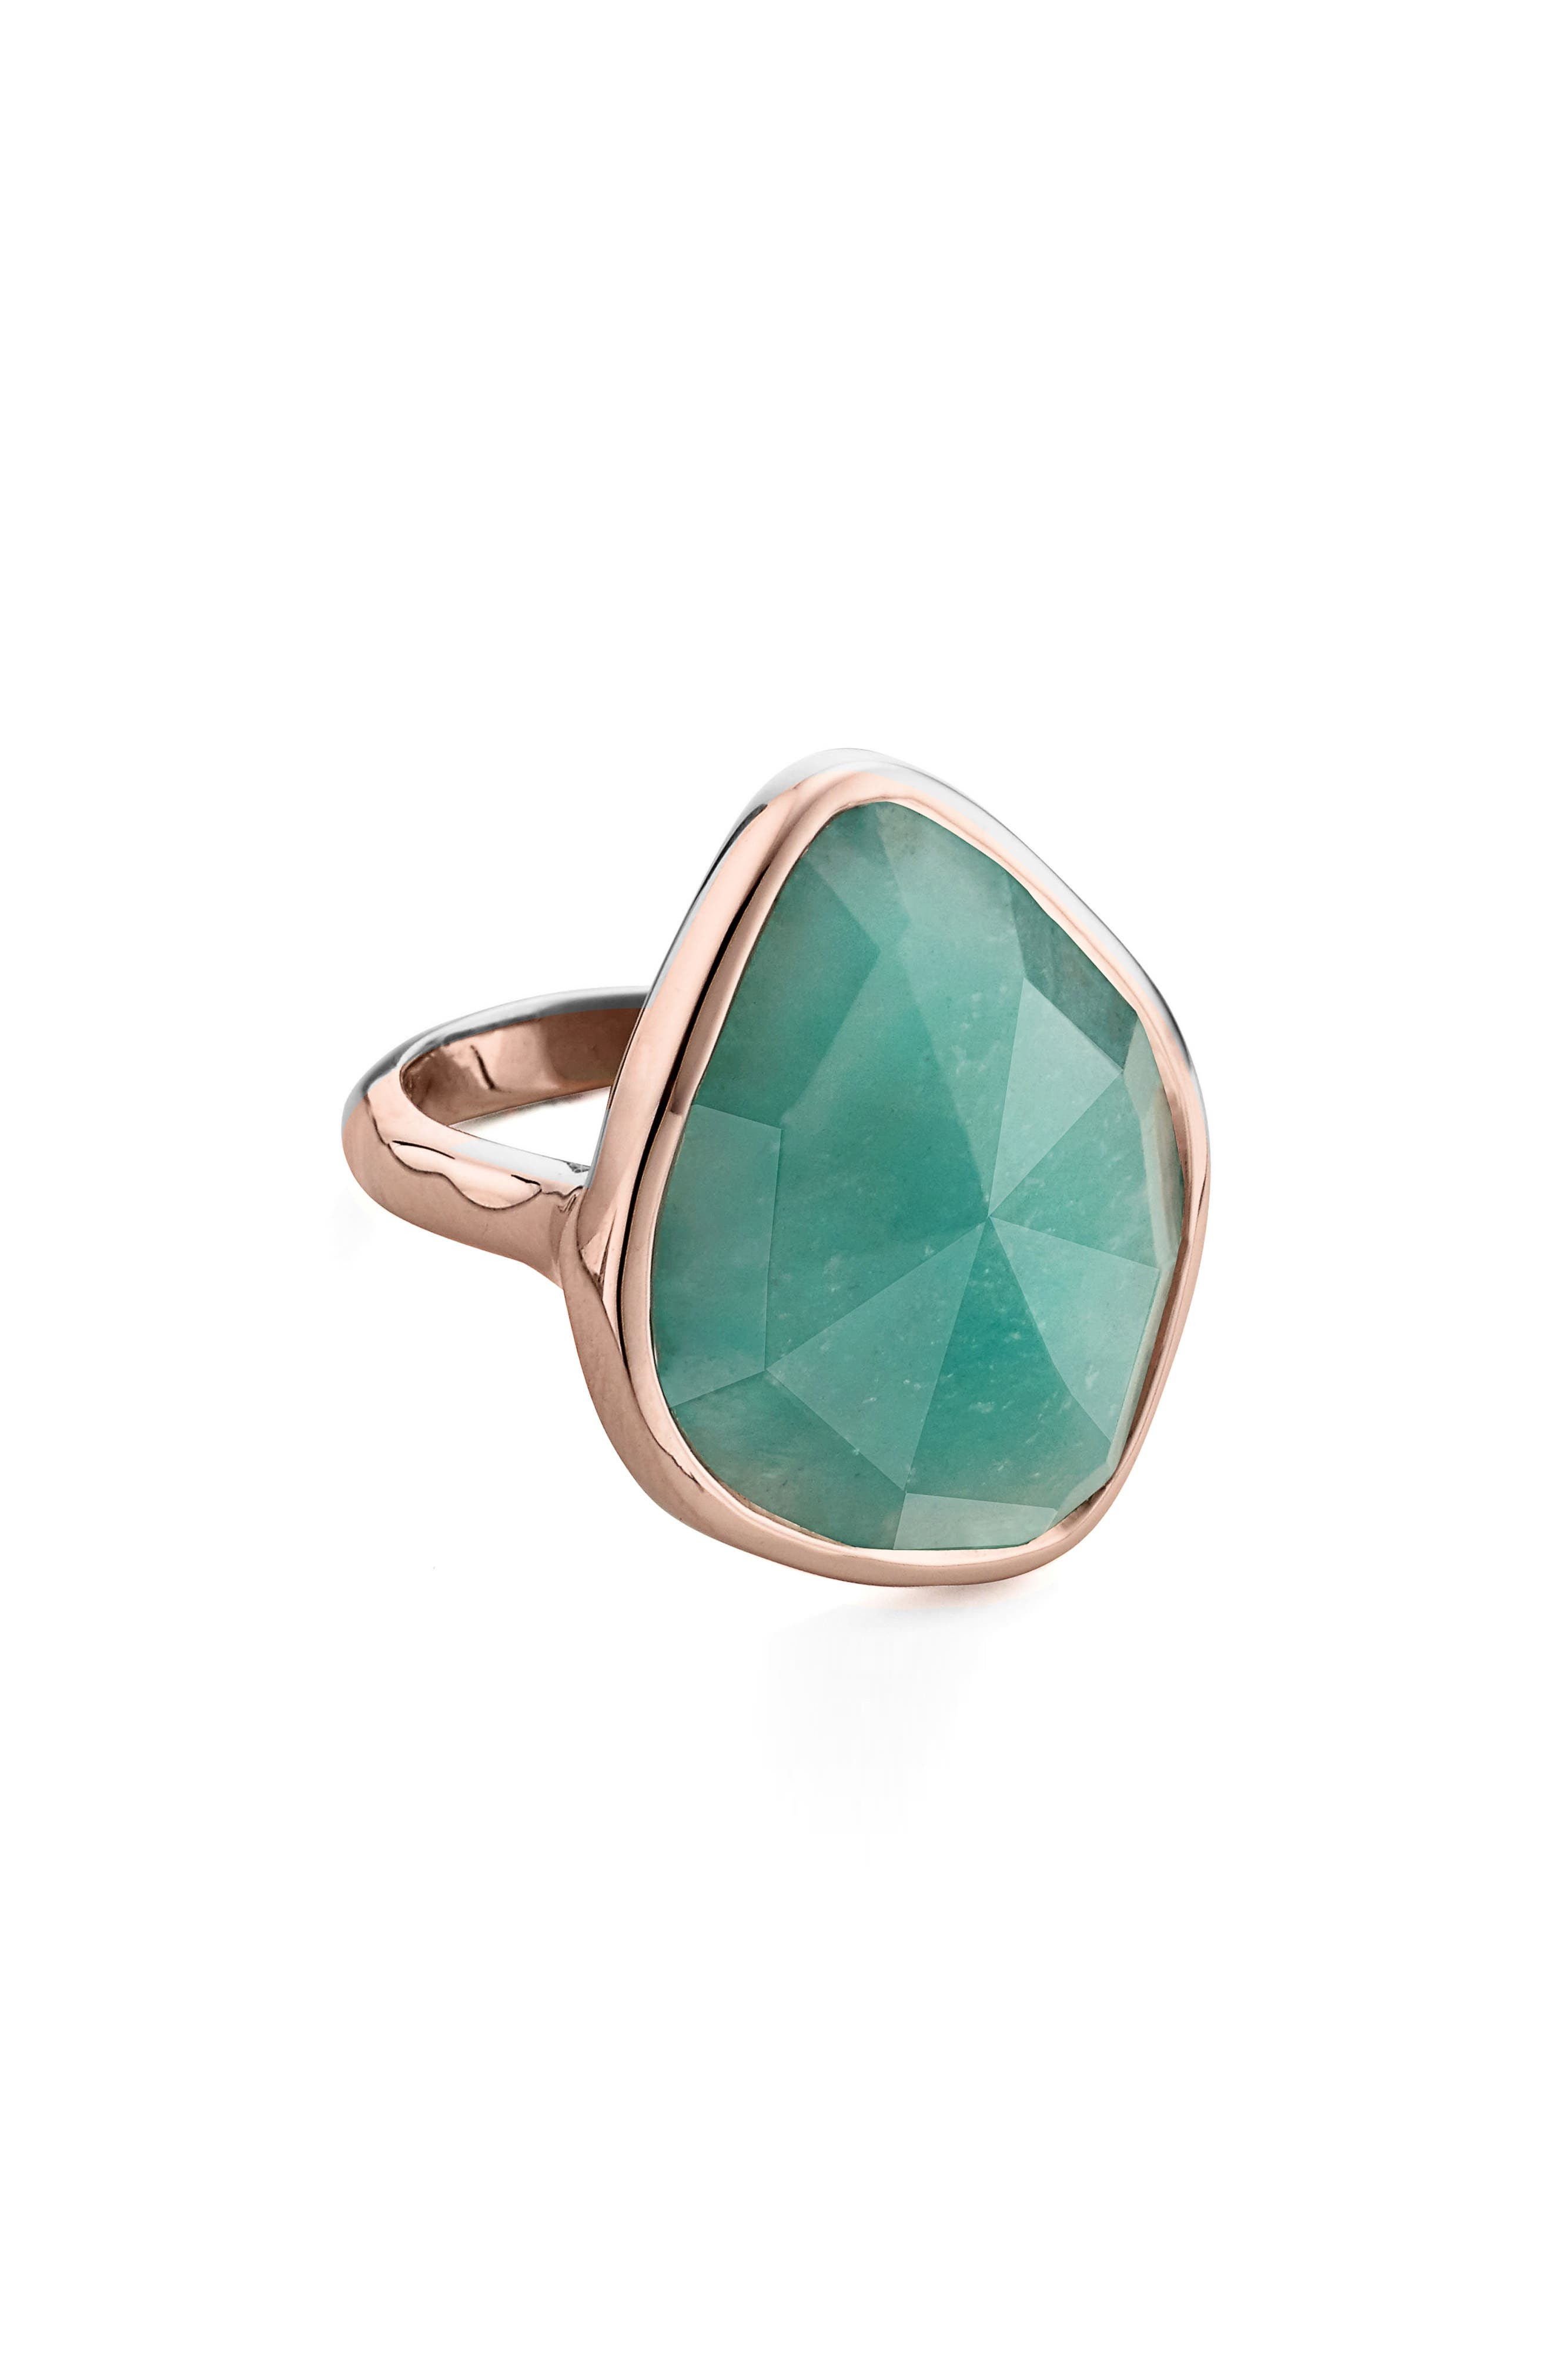 Siren Nugget Semiprecious Stone Cocktail Ring,                         Main,                         color, Rose Gold/ Amazonite